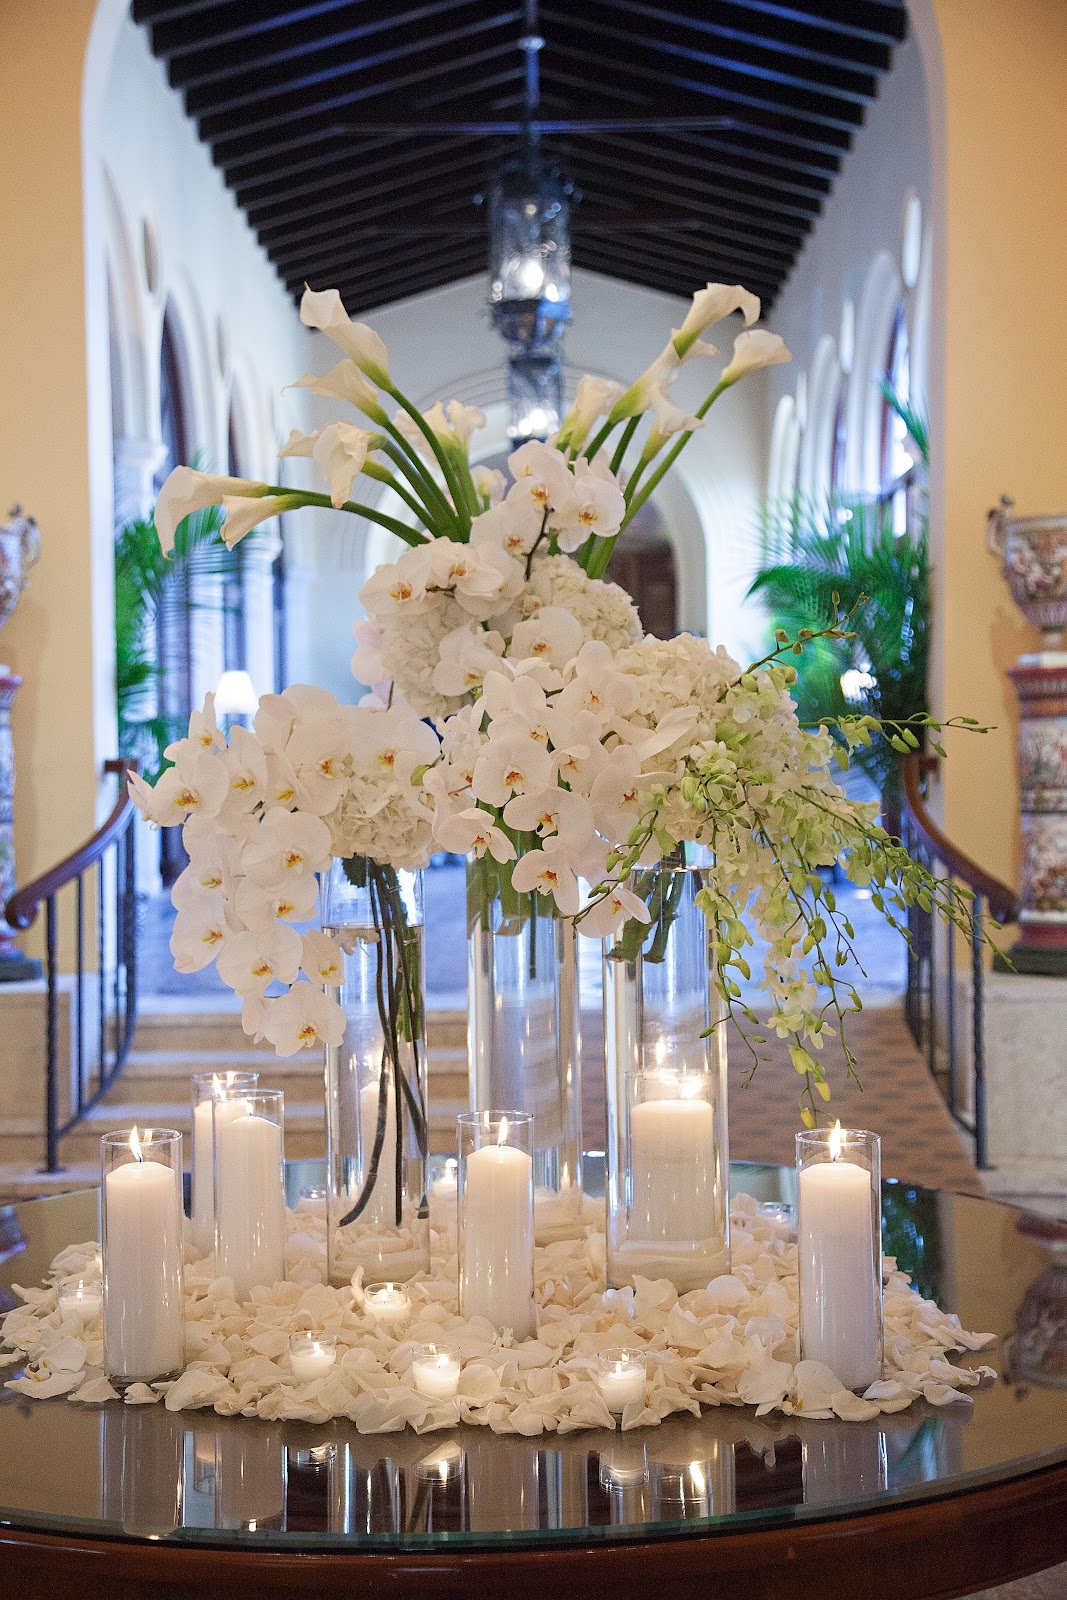 Ocean flowers divine design by guerdy caicedo wedding for Contemporary table centerpieces